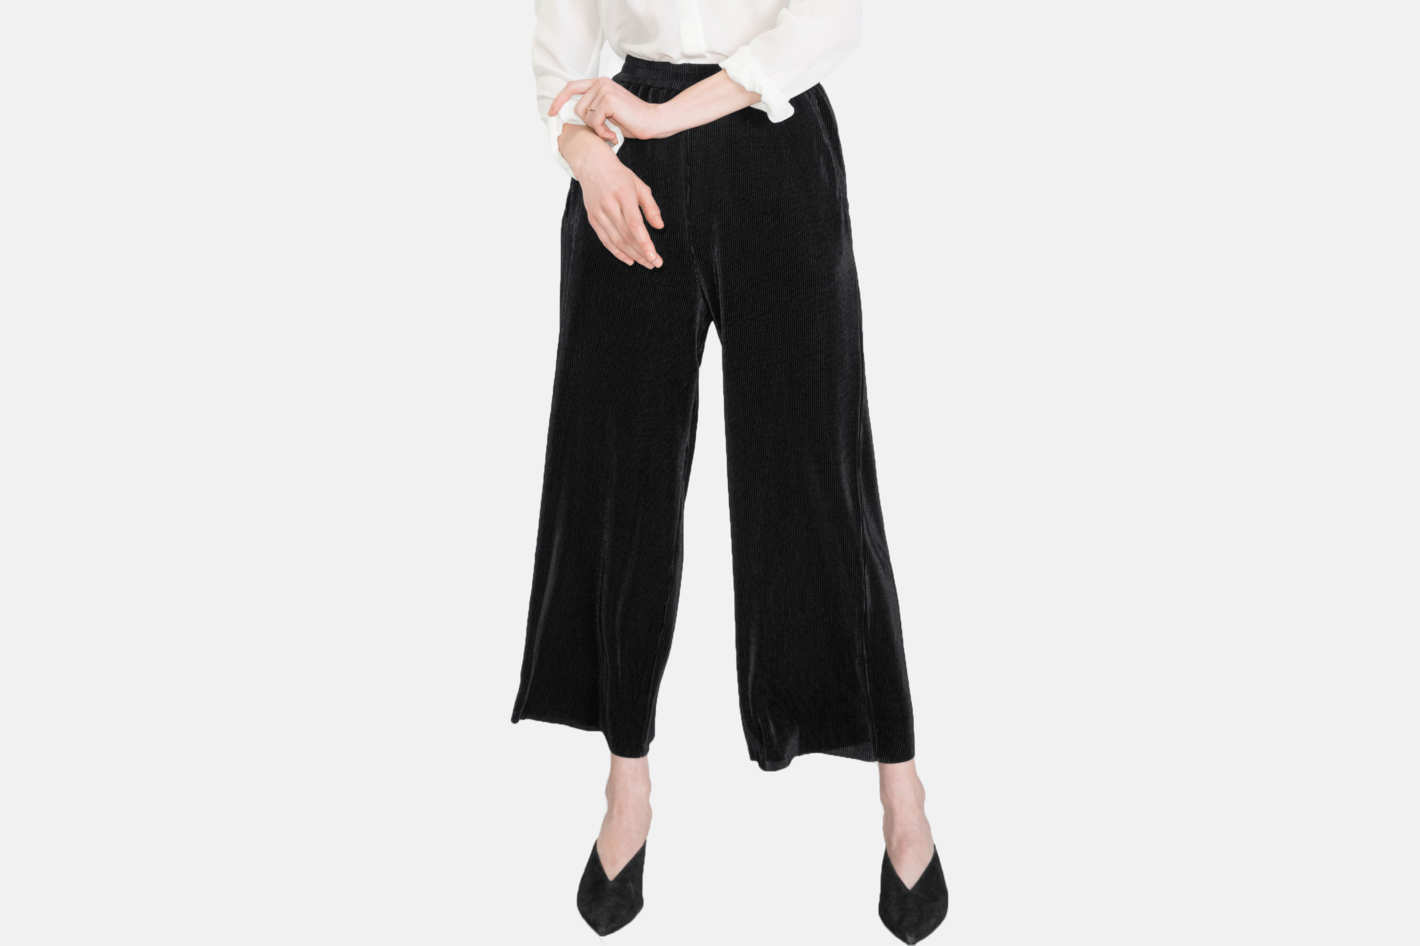 & Other Stories Pleated Metallic Pants